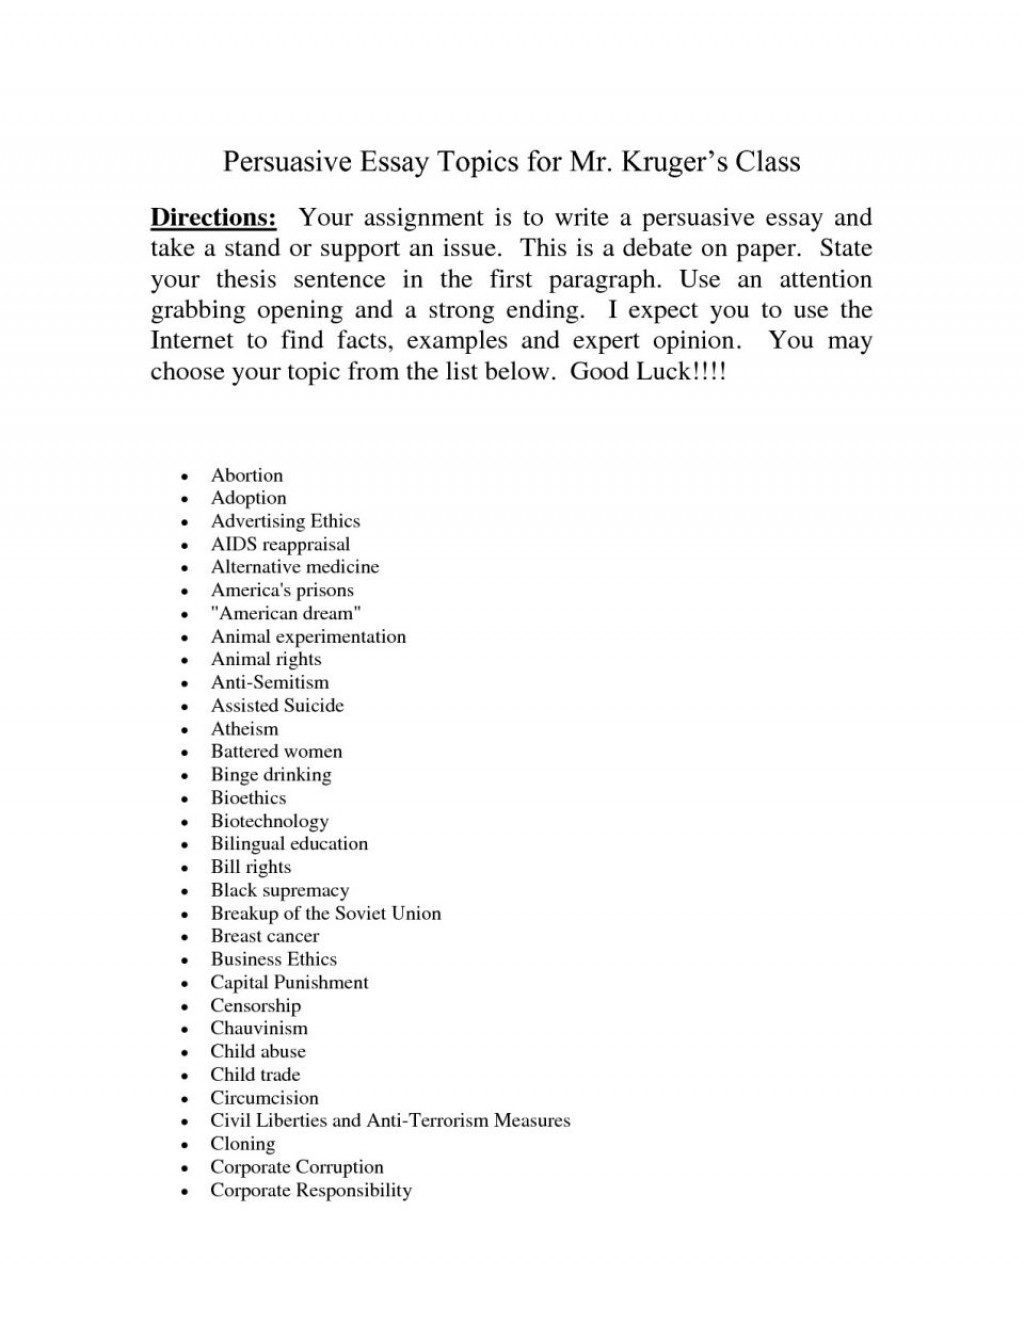 001 Research Paper Topics Easy Topic For Essay Barca Fontanacountryinn Within Good Persuasive Narrative To Write Abo About Personal Descriptive Informative Archaicawful Psychology English High School Large